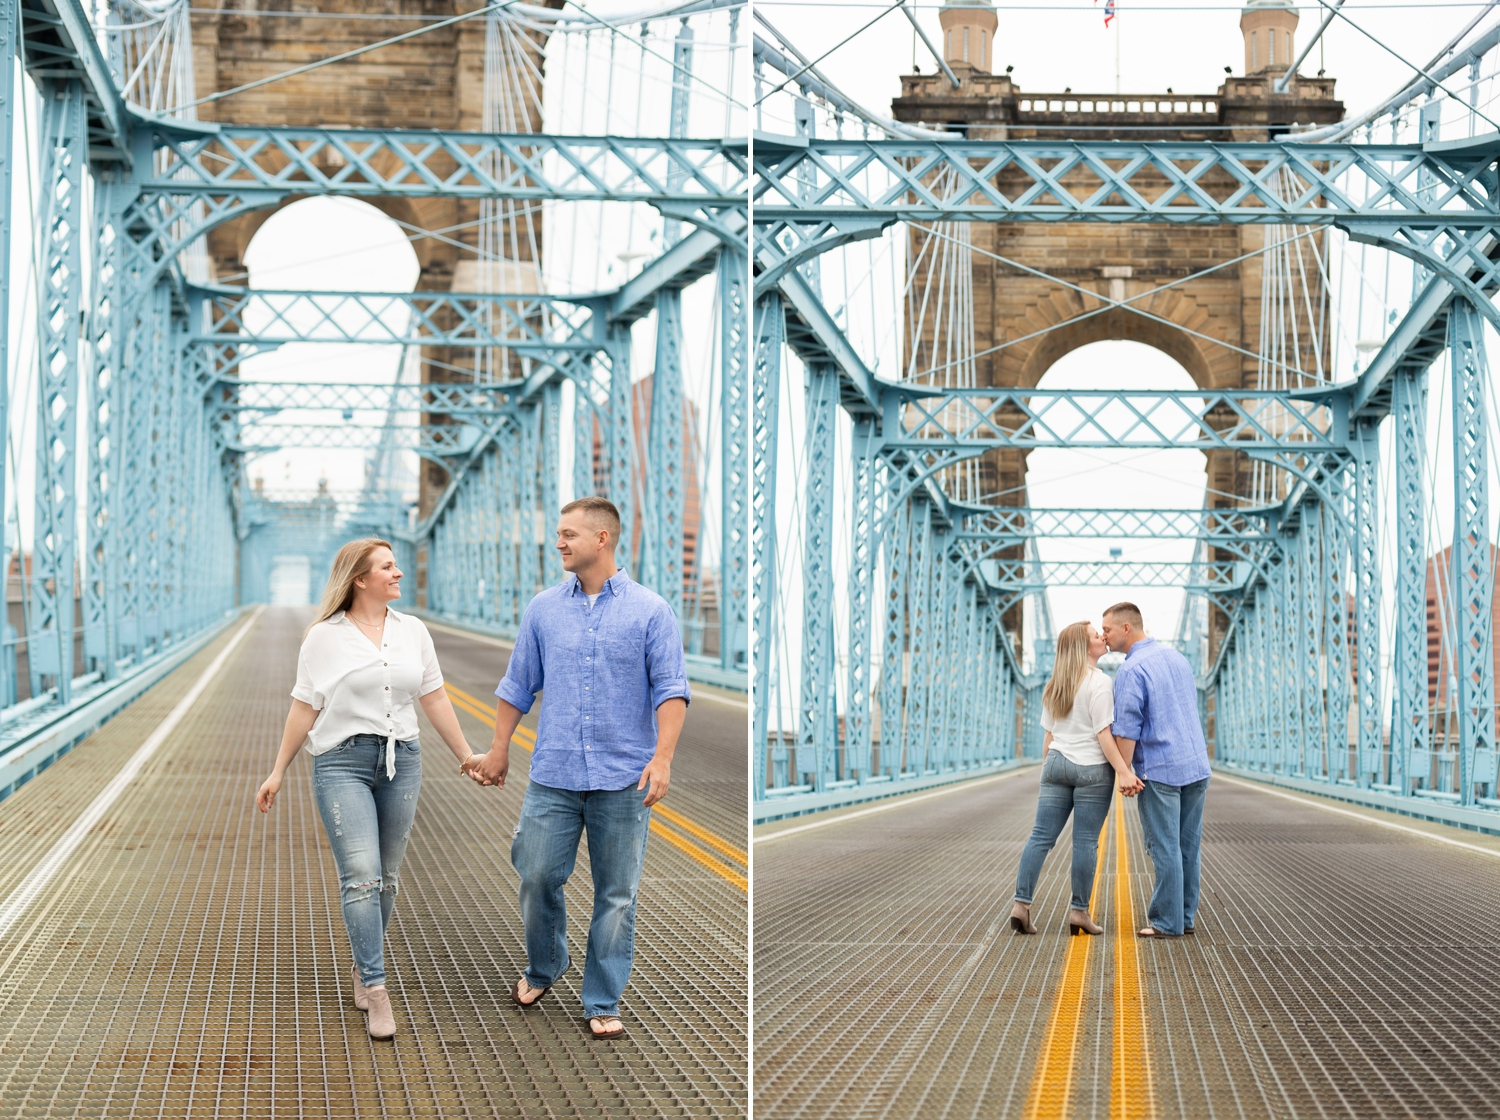 roebling bridge, engagement session, downtown Cincinnati, Cincinnati engagement session, engagement photos, spring engagement photos, roebling bridge photos, downtown Cincinnati engagement photos, Cincinnati engagement photographer, ohio engagement photos